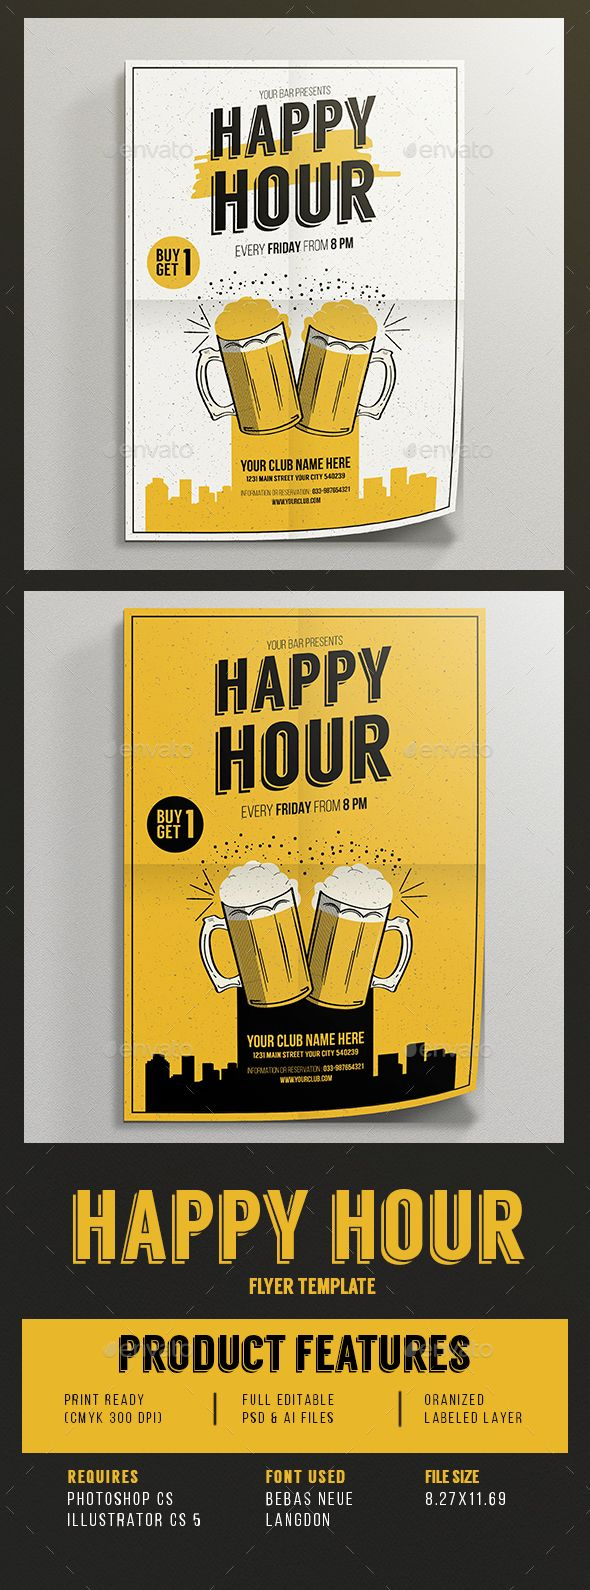 Happy Hour Beer Promotion Flyer Template PSD, Vector AI #design Download: http://graphicriver.net/item/happy-hour-beer-promotion-flyer/14221507?ref=ksioks